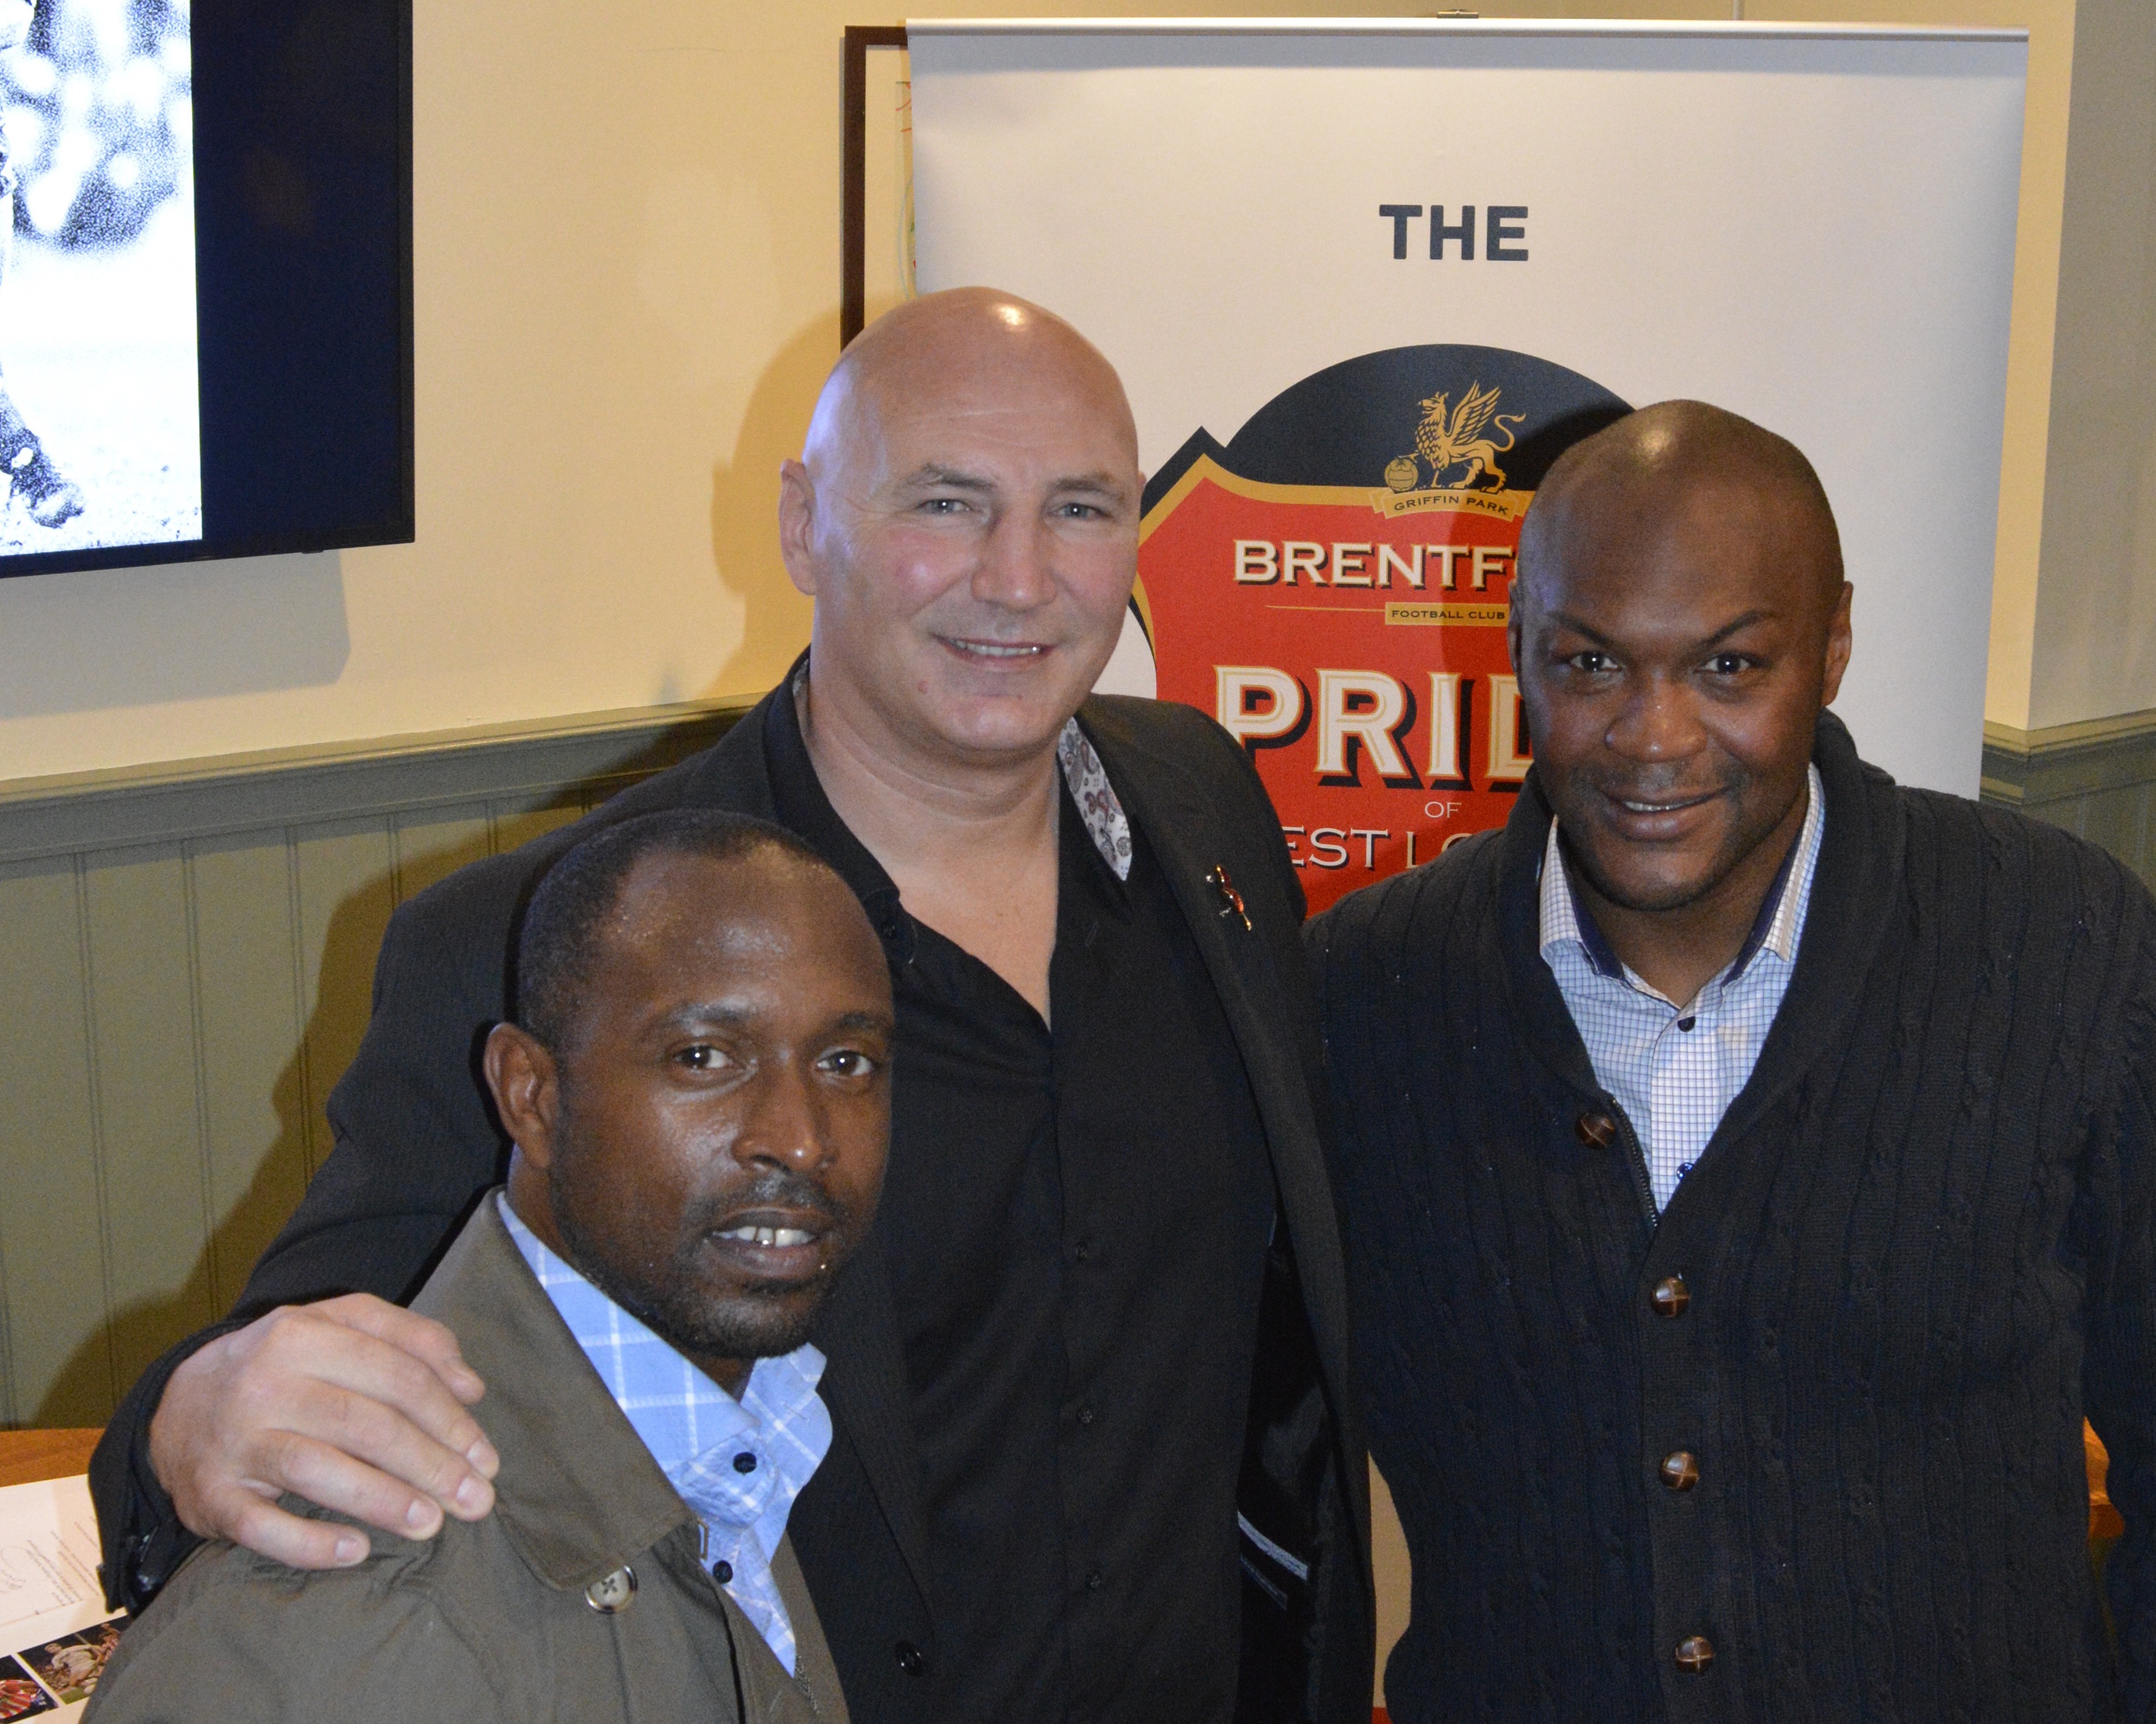 (AUDIO) Marcus Gayle, Terry Evans and Ijah Anderson Give Hilarious Lowdown on Their Times At Brentford at Lively Pub Event